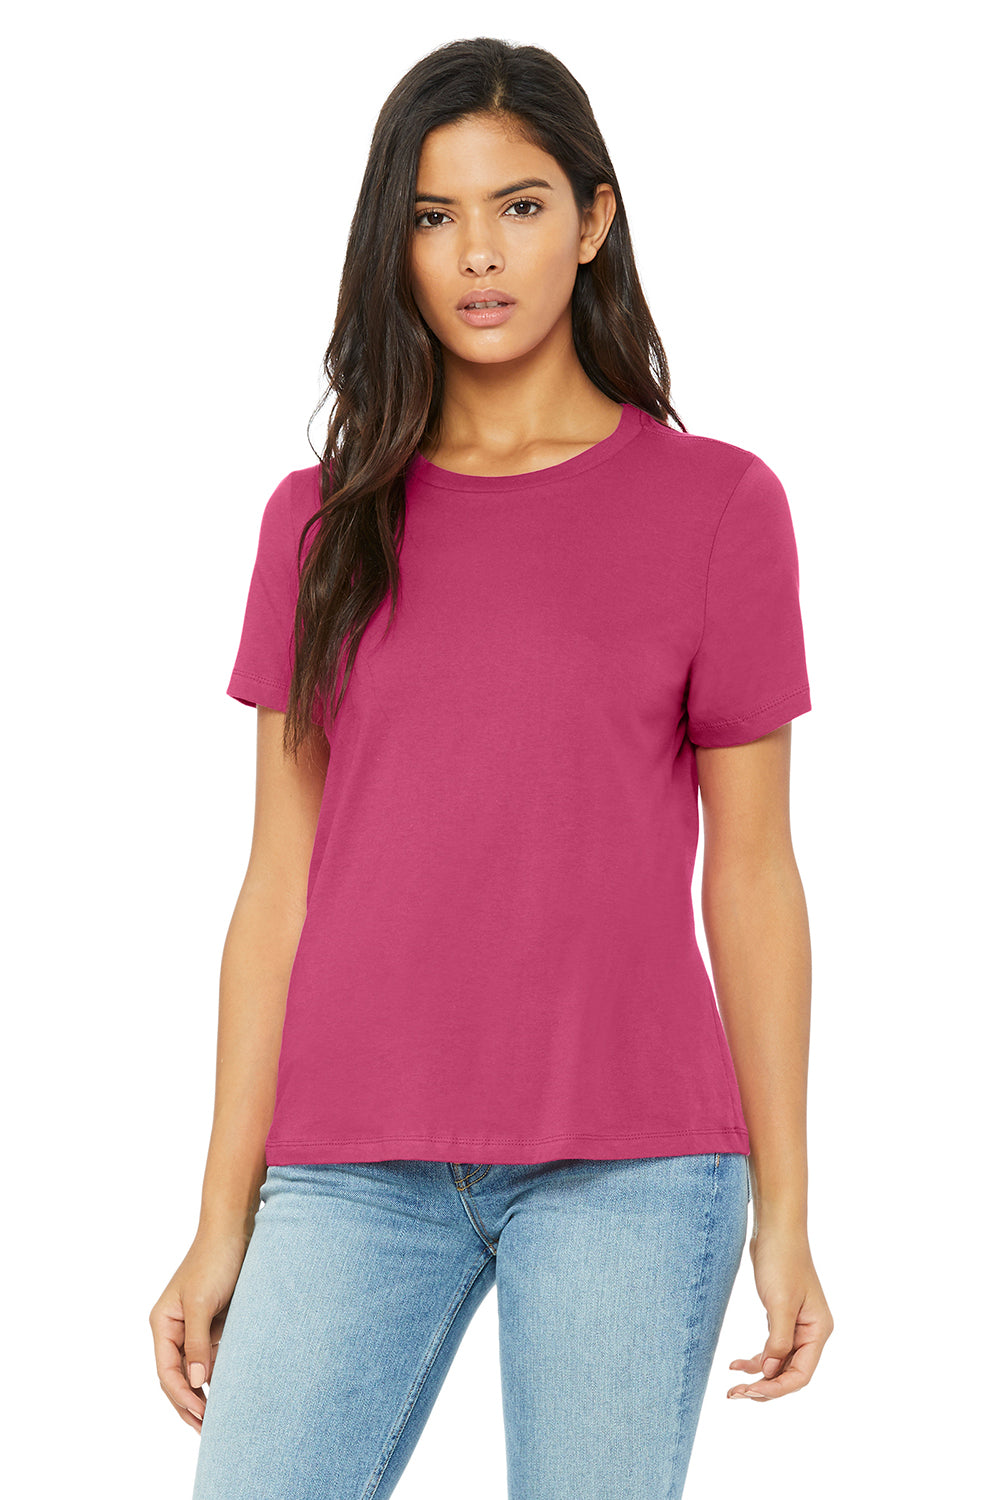 Bella + Canvas B6400 Womens Relaxed Jersey Short Sleeve Crewneck T-Shirt Berry Pink Front